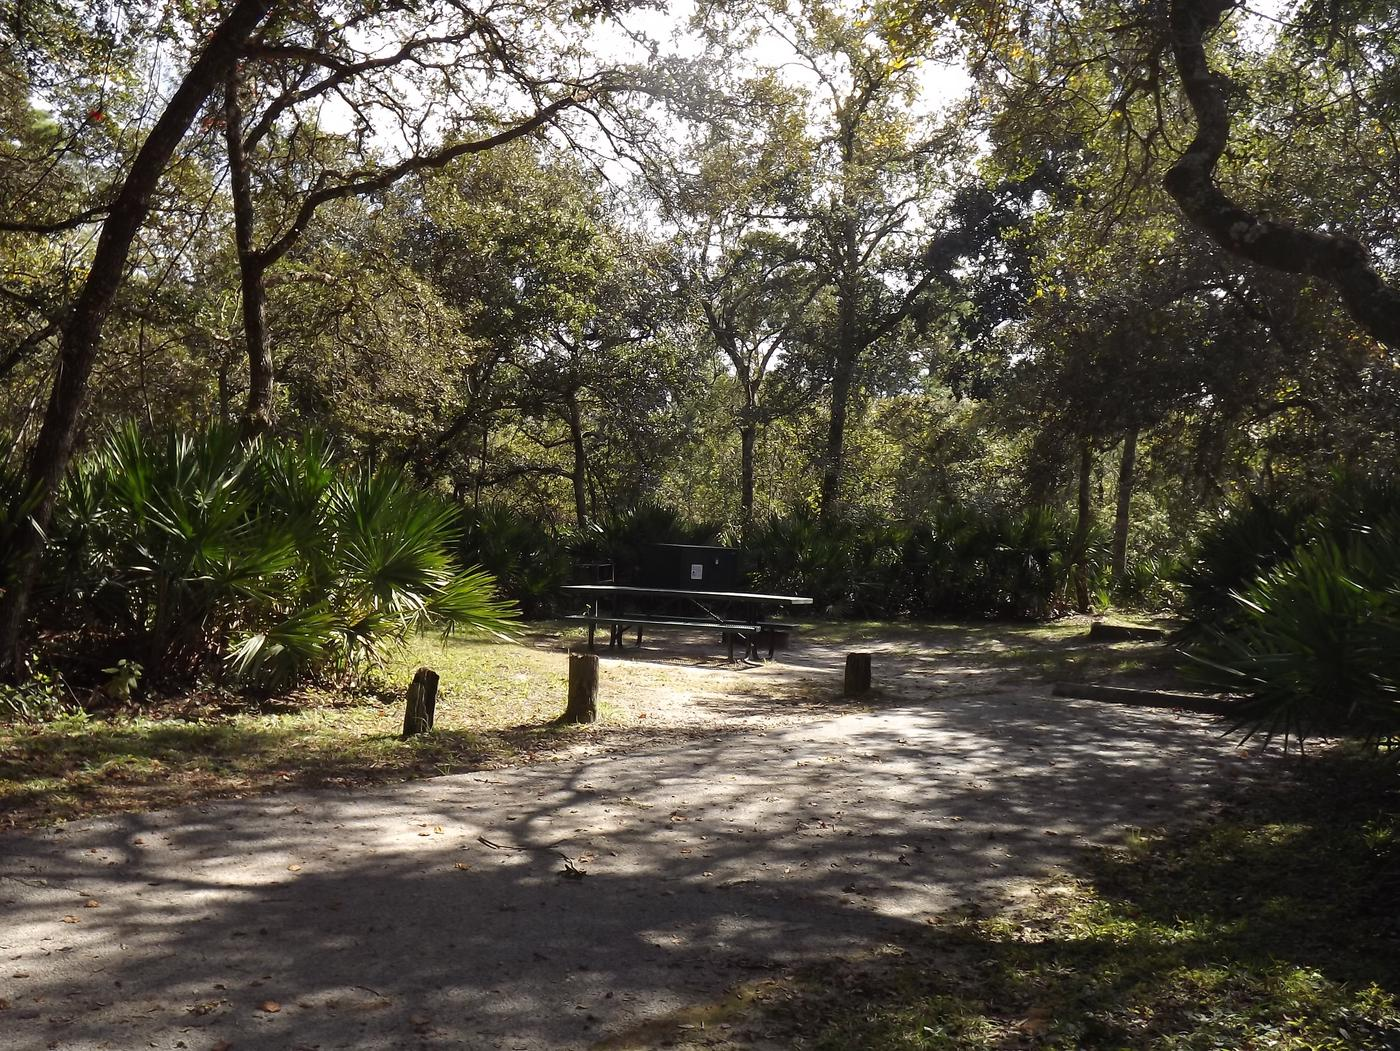 Juniper Springs Recreation Area site #48 tropical setting with picnic area and camping space.